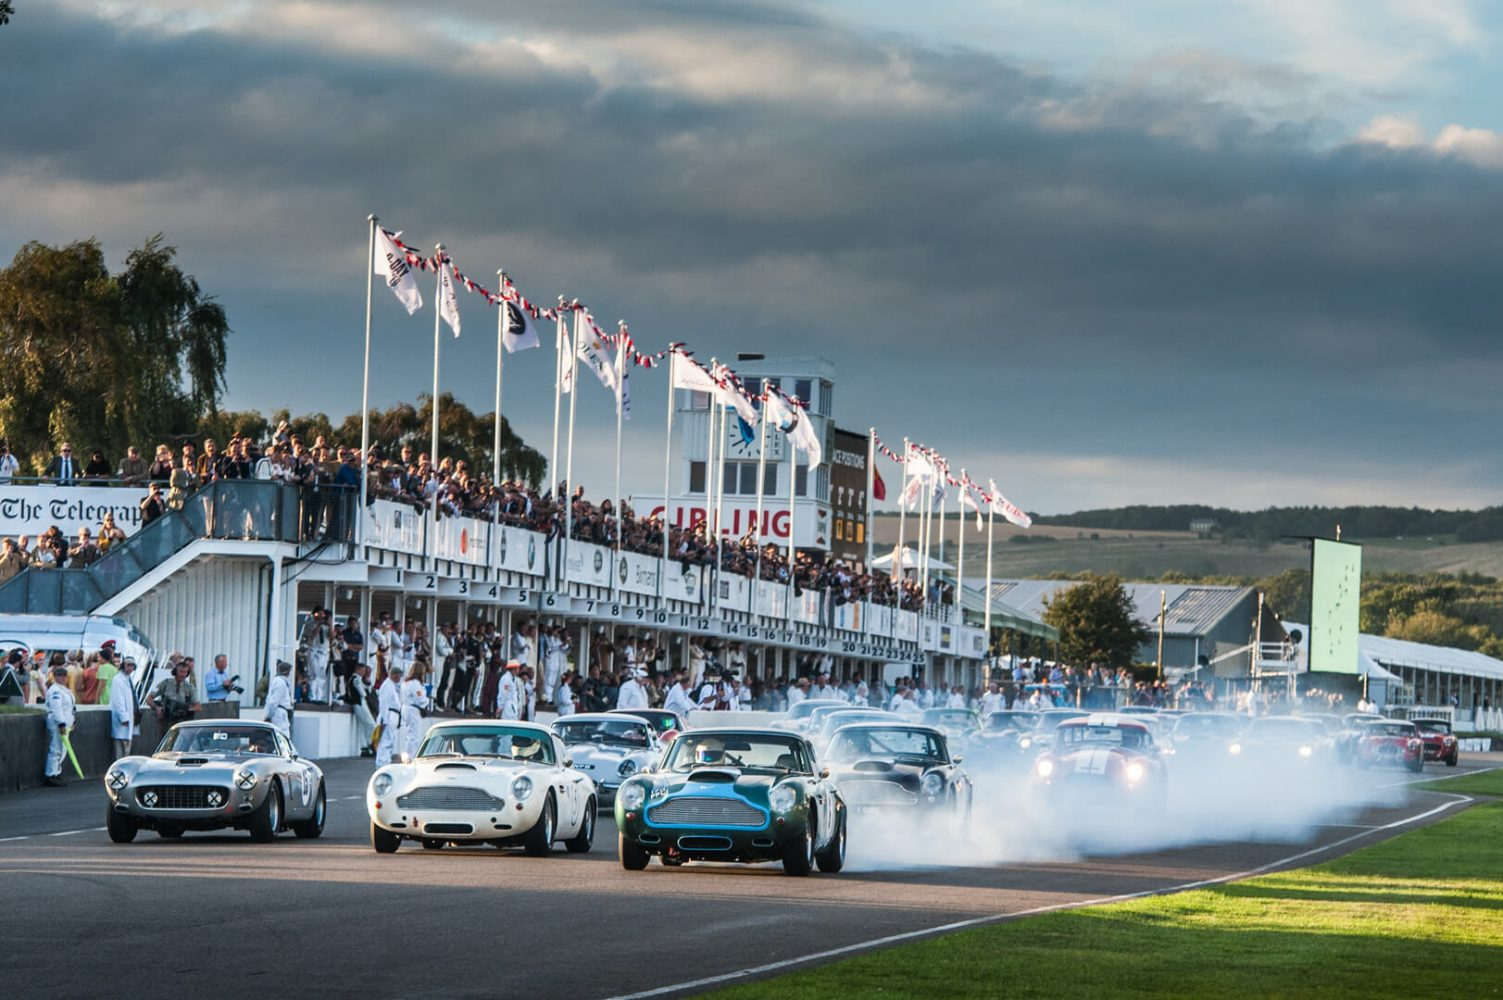 Vintage cars down race track at Goodwood Estate